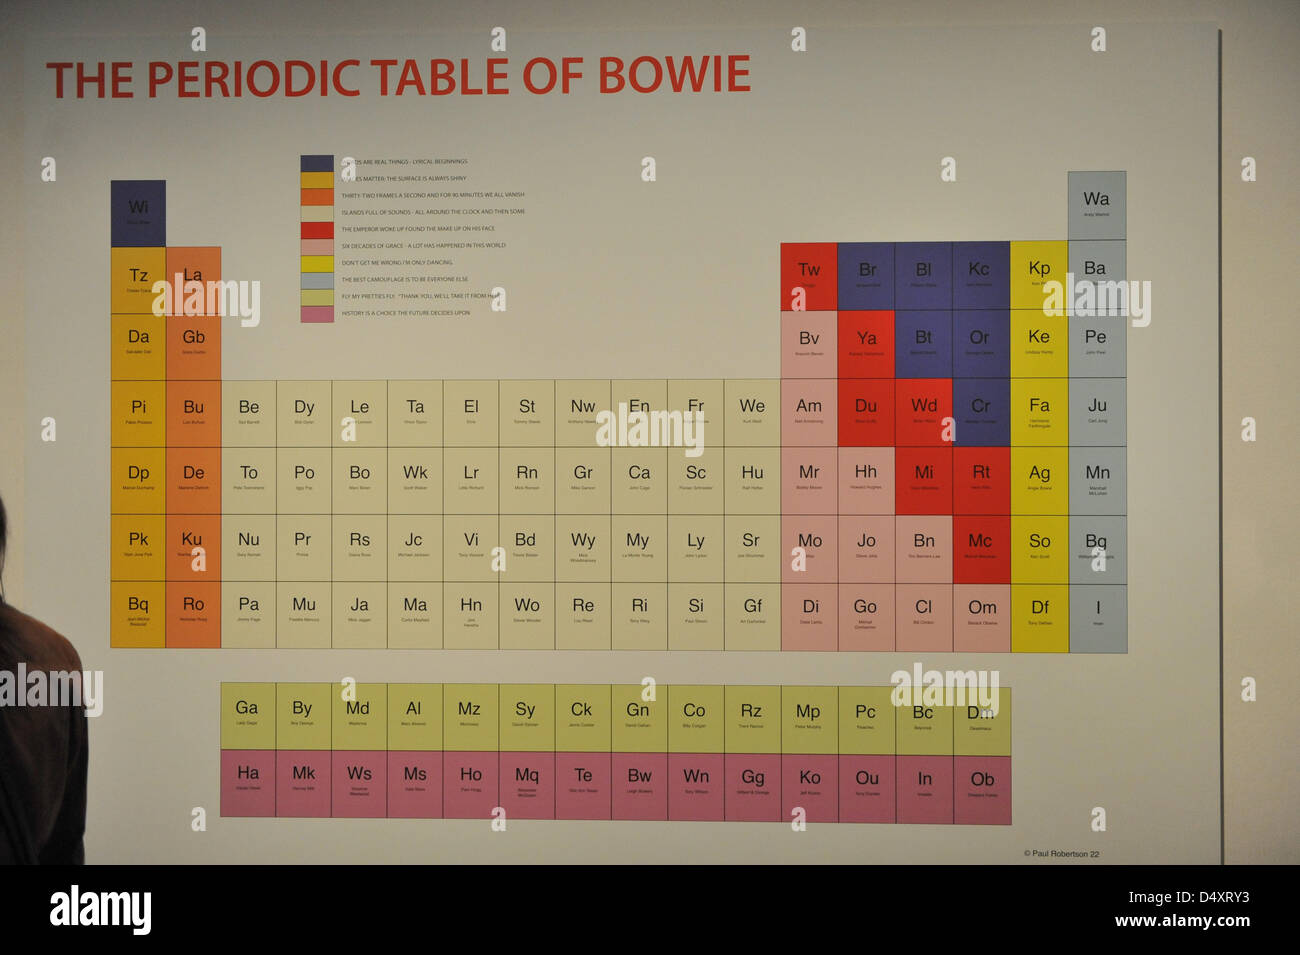 Va london uk 20th march 2013 the periodic table of bowie at the the periodic table of bowie at the va exhibition the david bowie is exhibition at the va in london with collected costumes and urtaz Choice Image